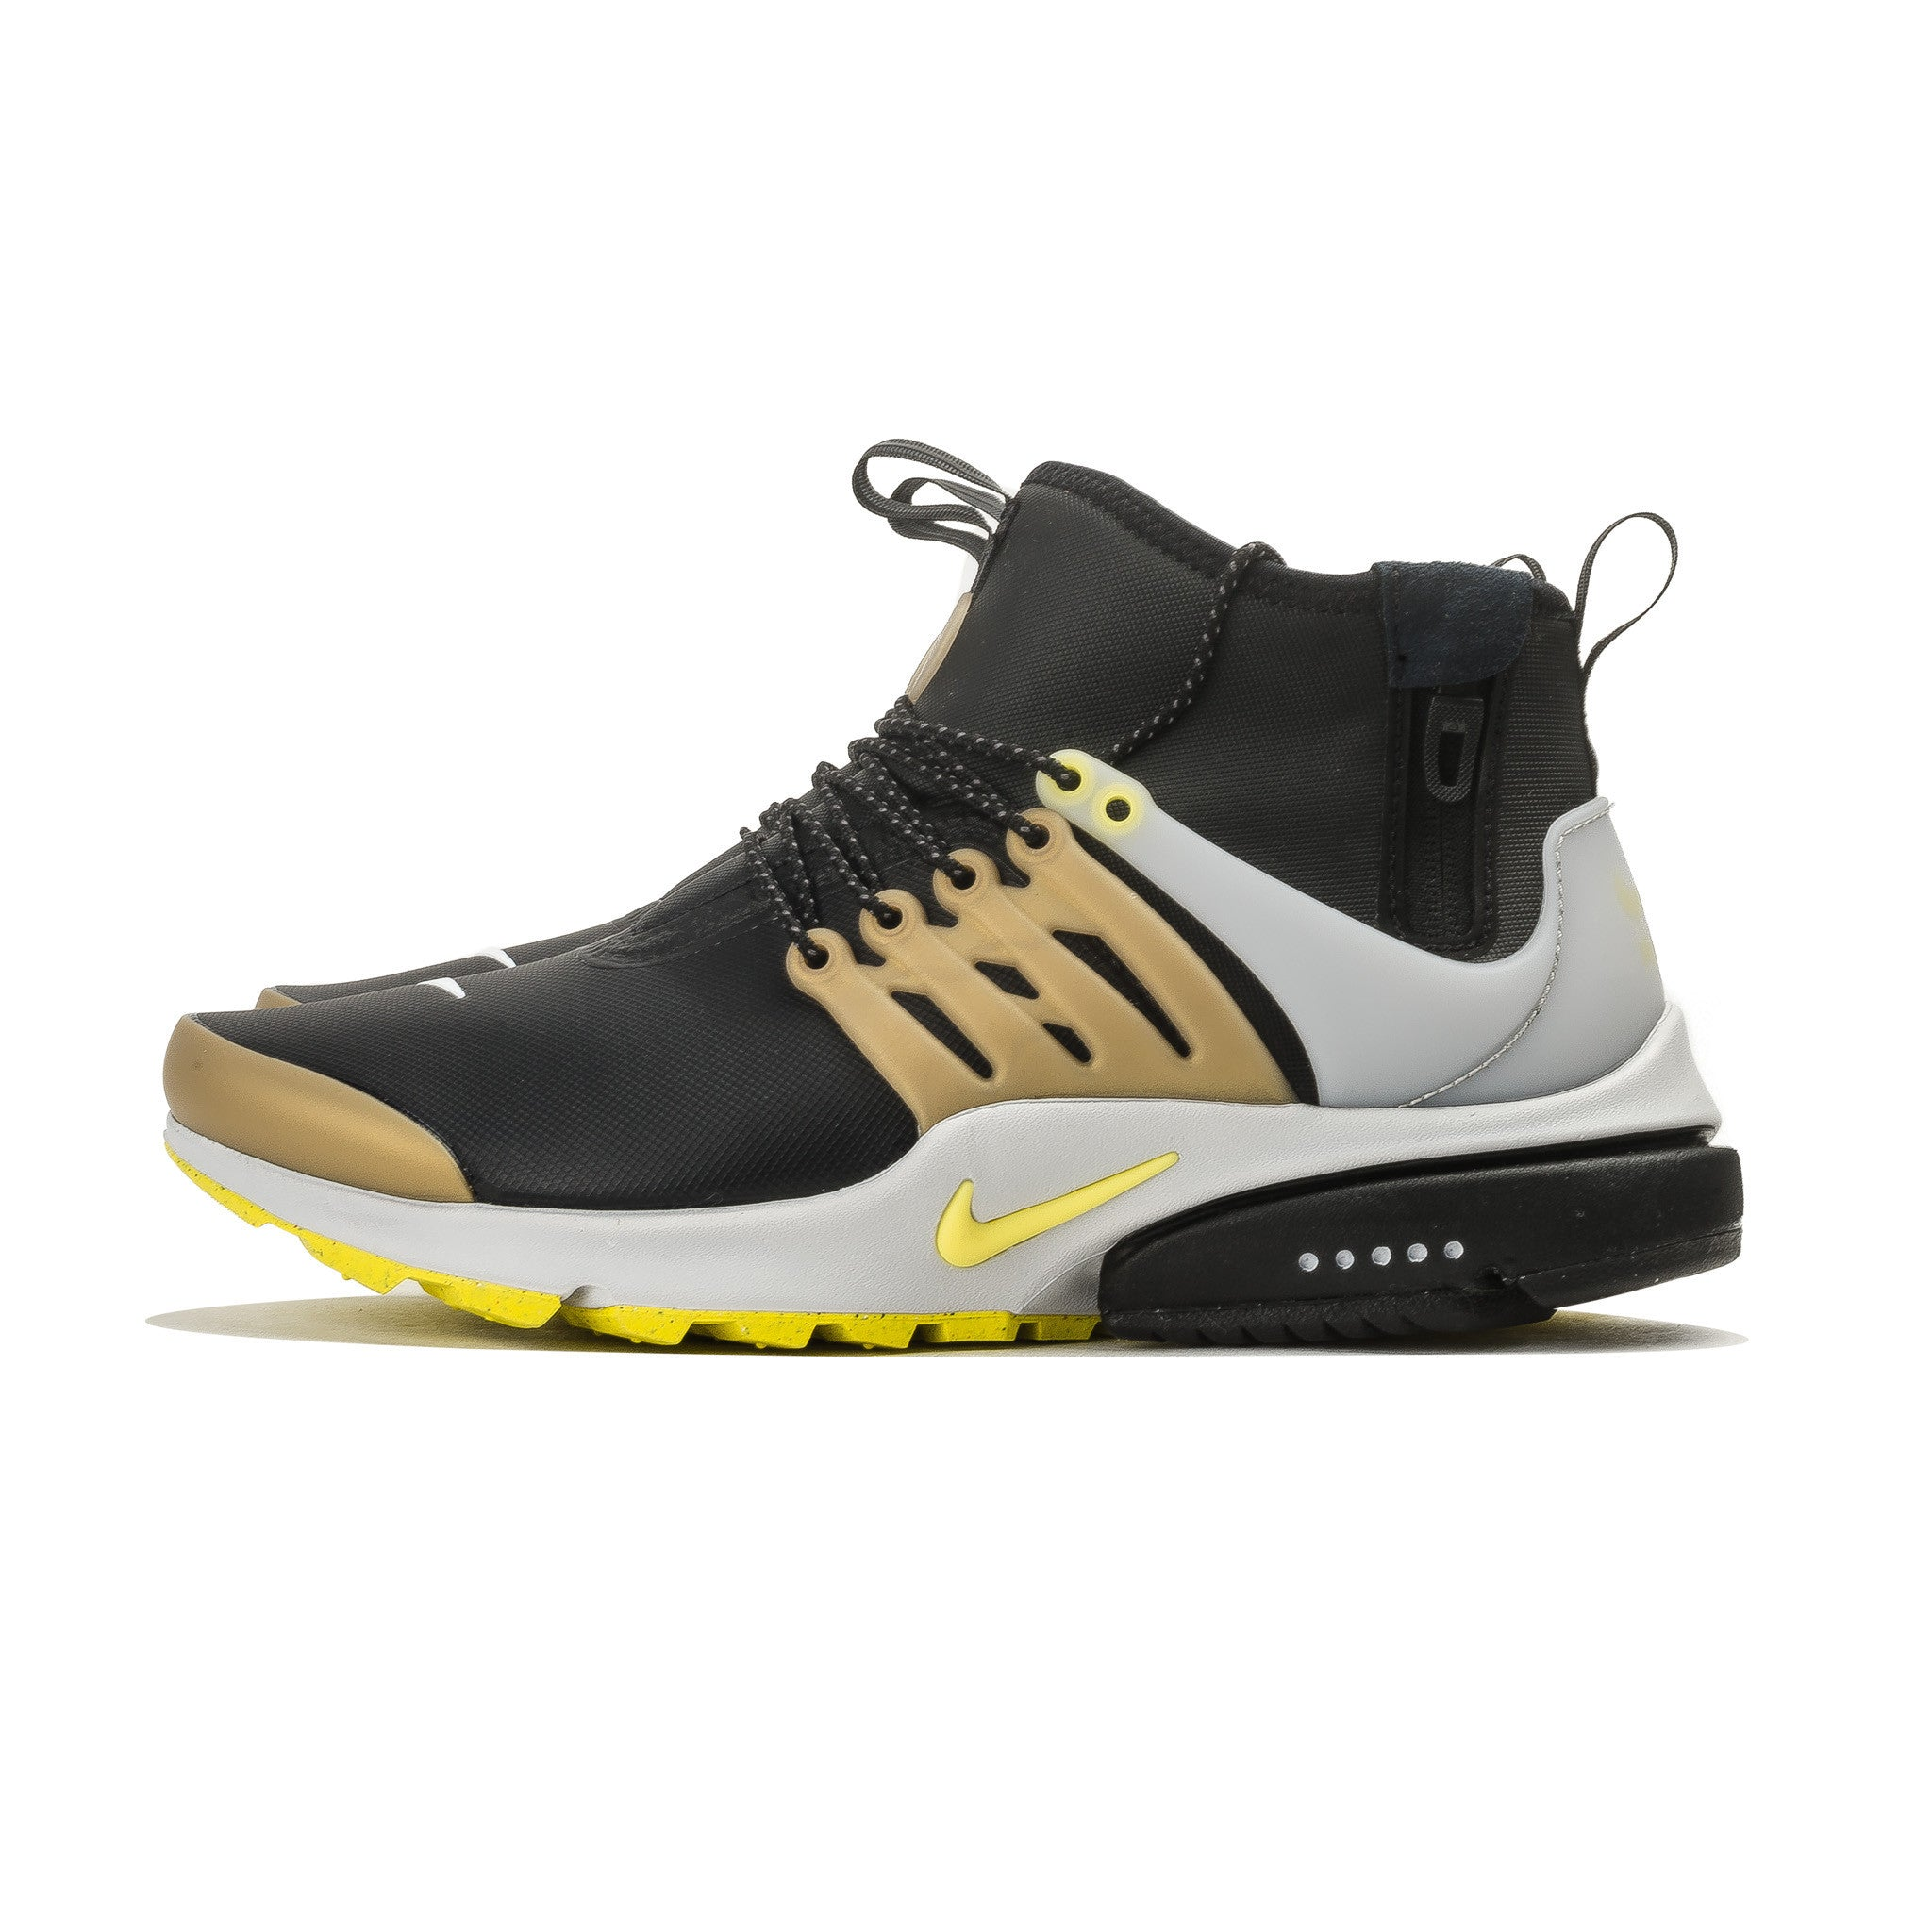 Air Presto Mid Utility 859524-002 Black